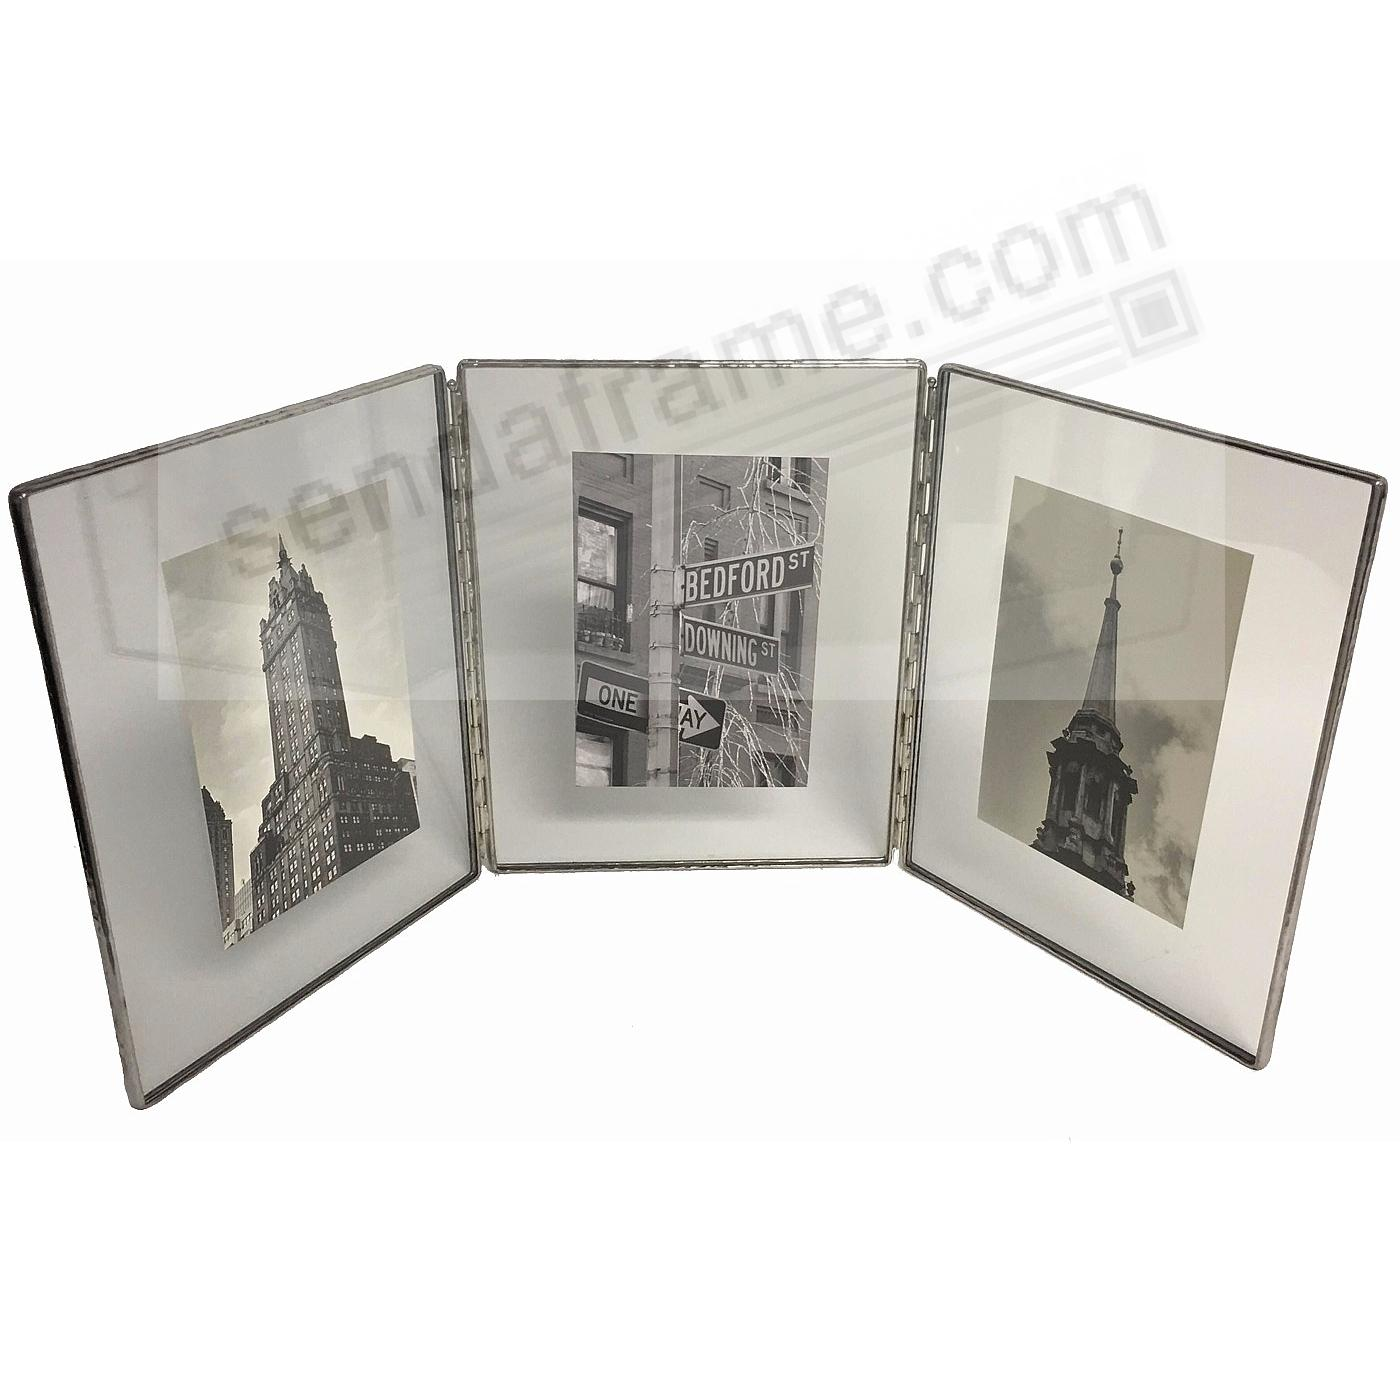 Picture frames photo albums personalized and engraved digital the original clear glass float frame 7x95x7 triple hinged silver by bedford downingreg jeuxipadfo Image collections